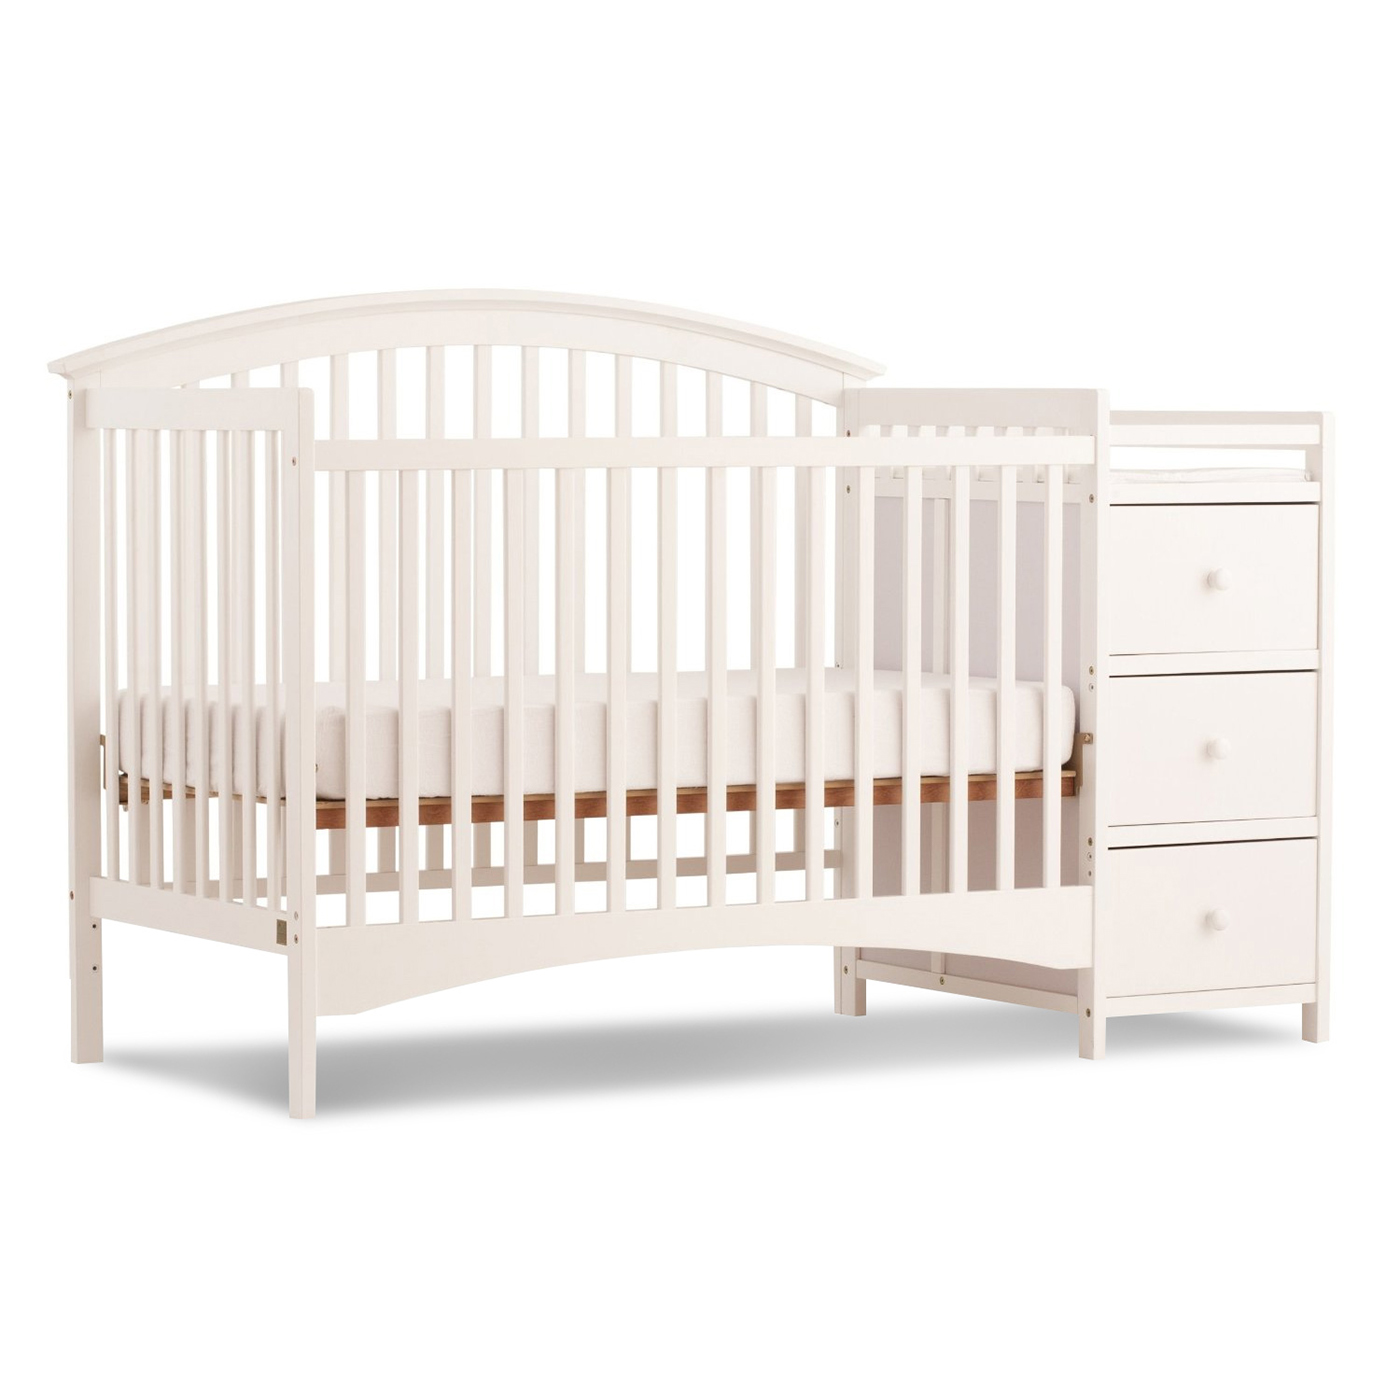 storkcraft bradford 4 in 1 fixed side convertible crib changer in white free shipping